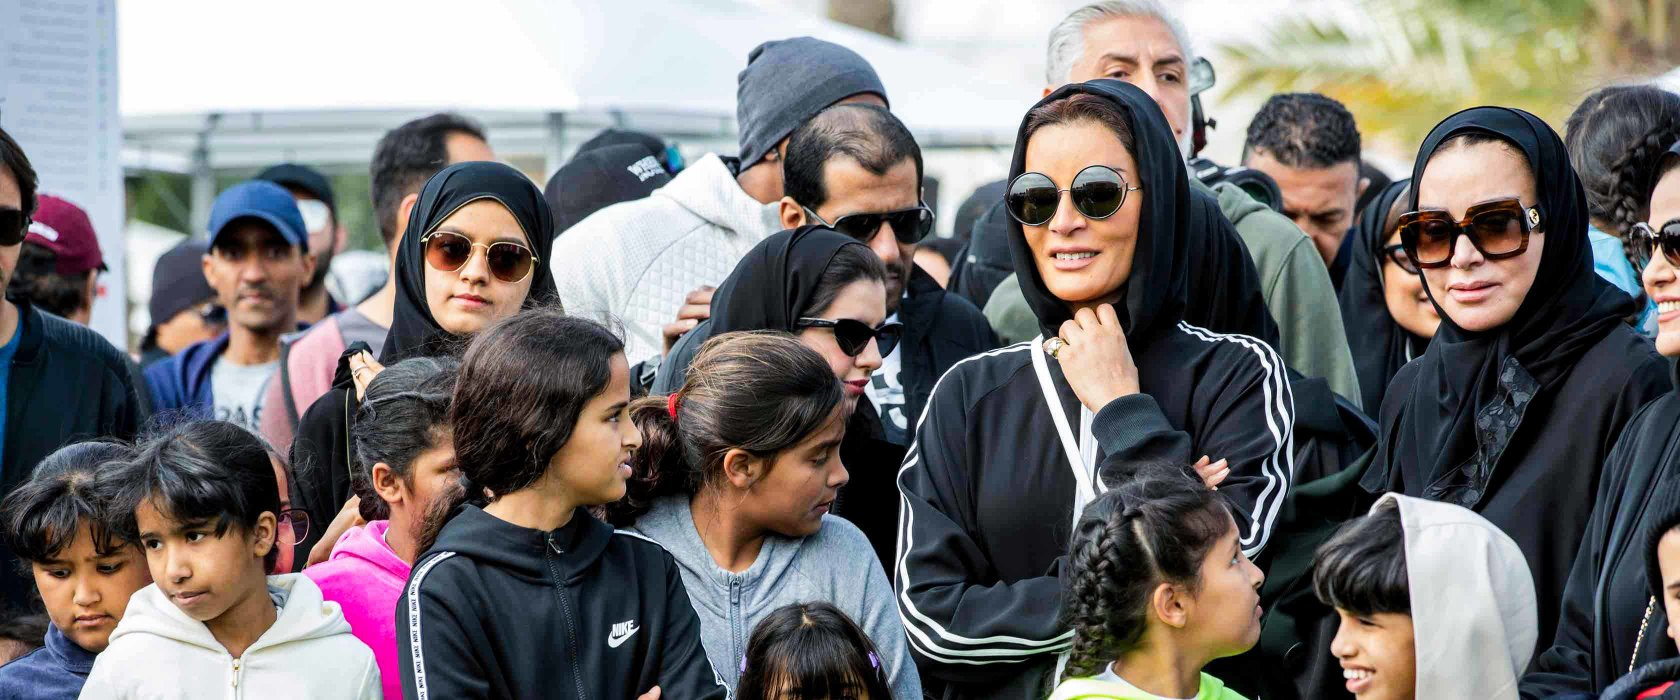 Her Highness Sheikha Moza bint Nasser joins QF's National Sport Day activities